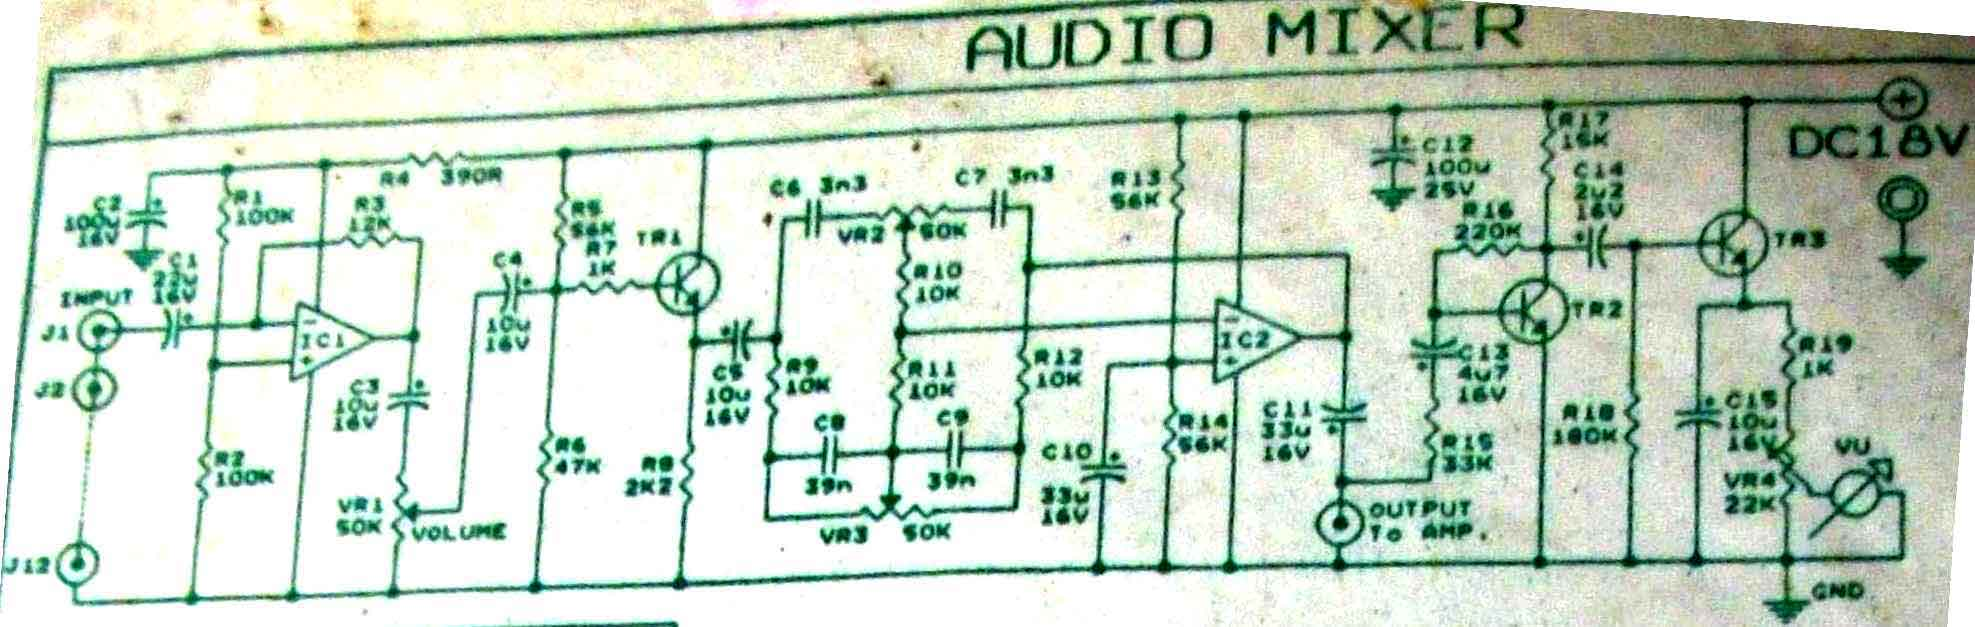 Vu Meter Circuit Counter Circuits Audio Level Electronic And Diagram With Mixer